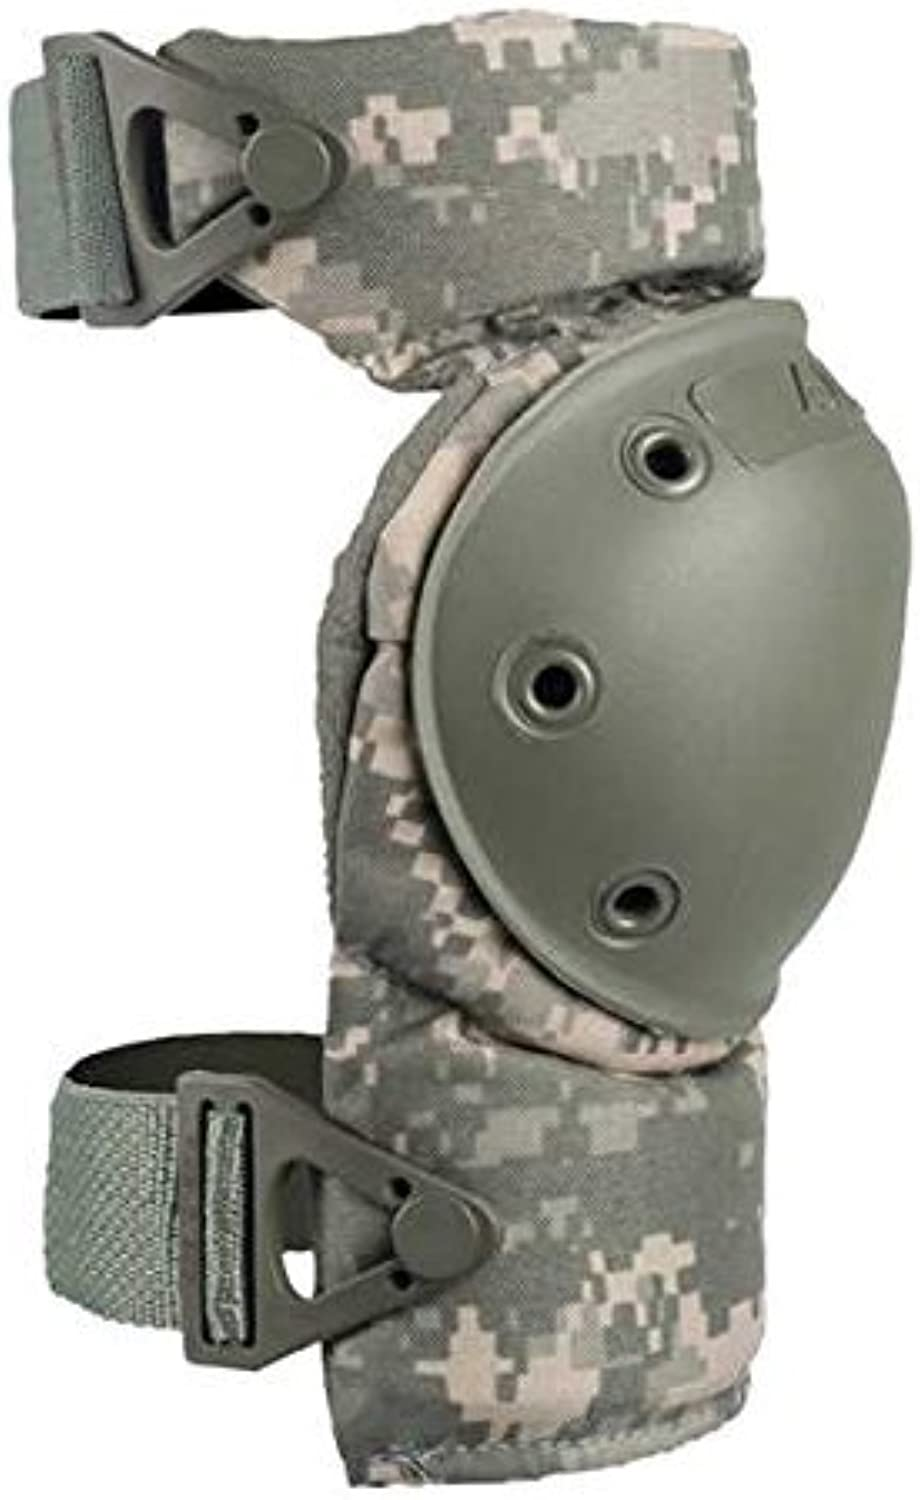 ALTA Tactical Contour Knee Pads - Flexible Round, Foliage Green (52913.15)